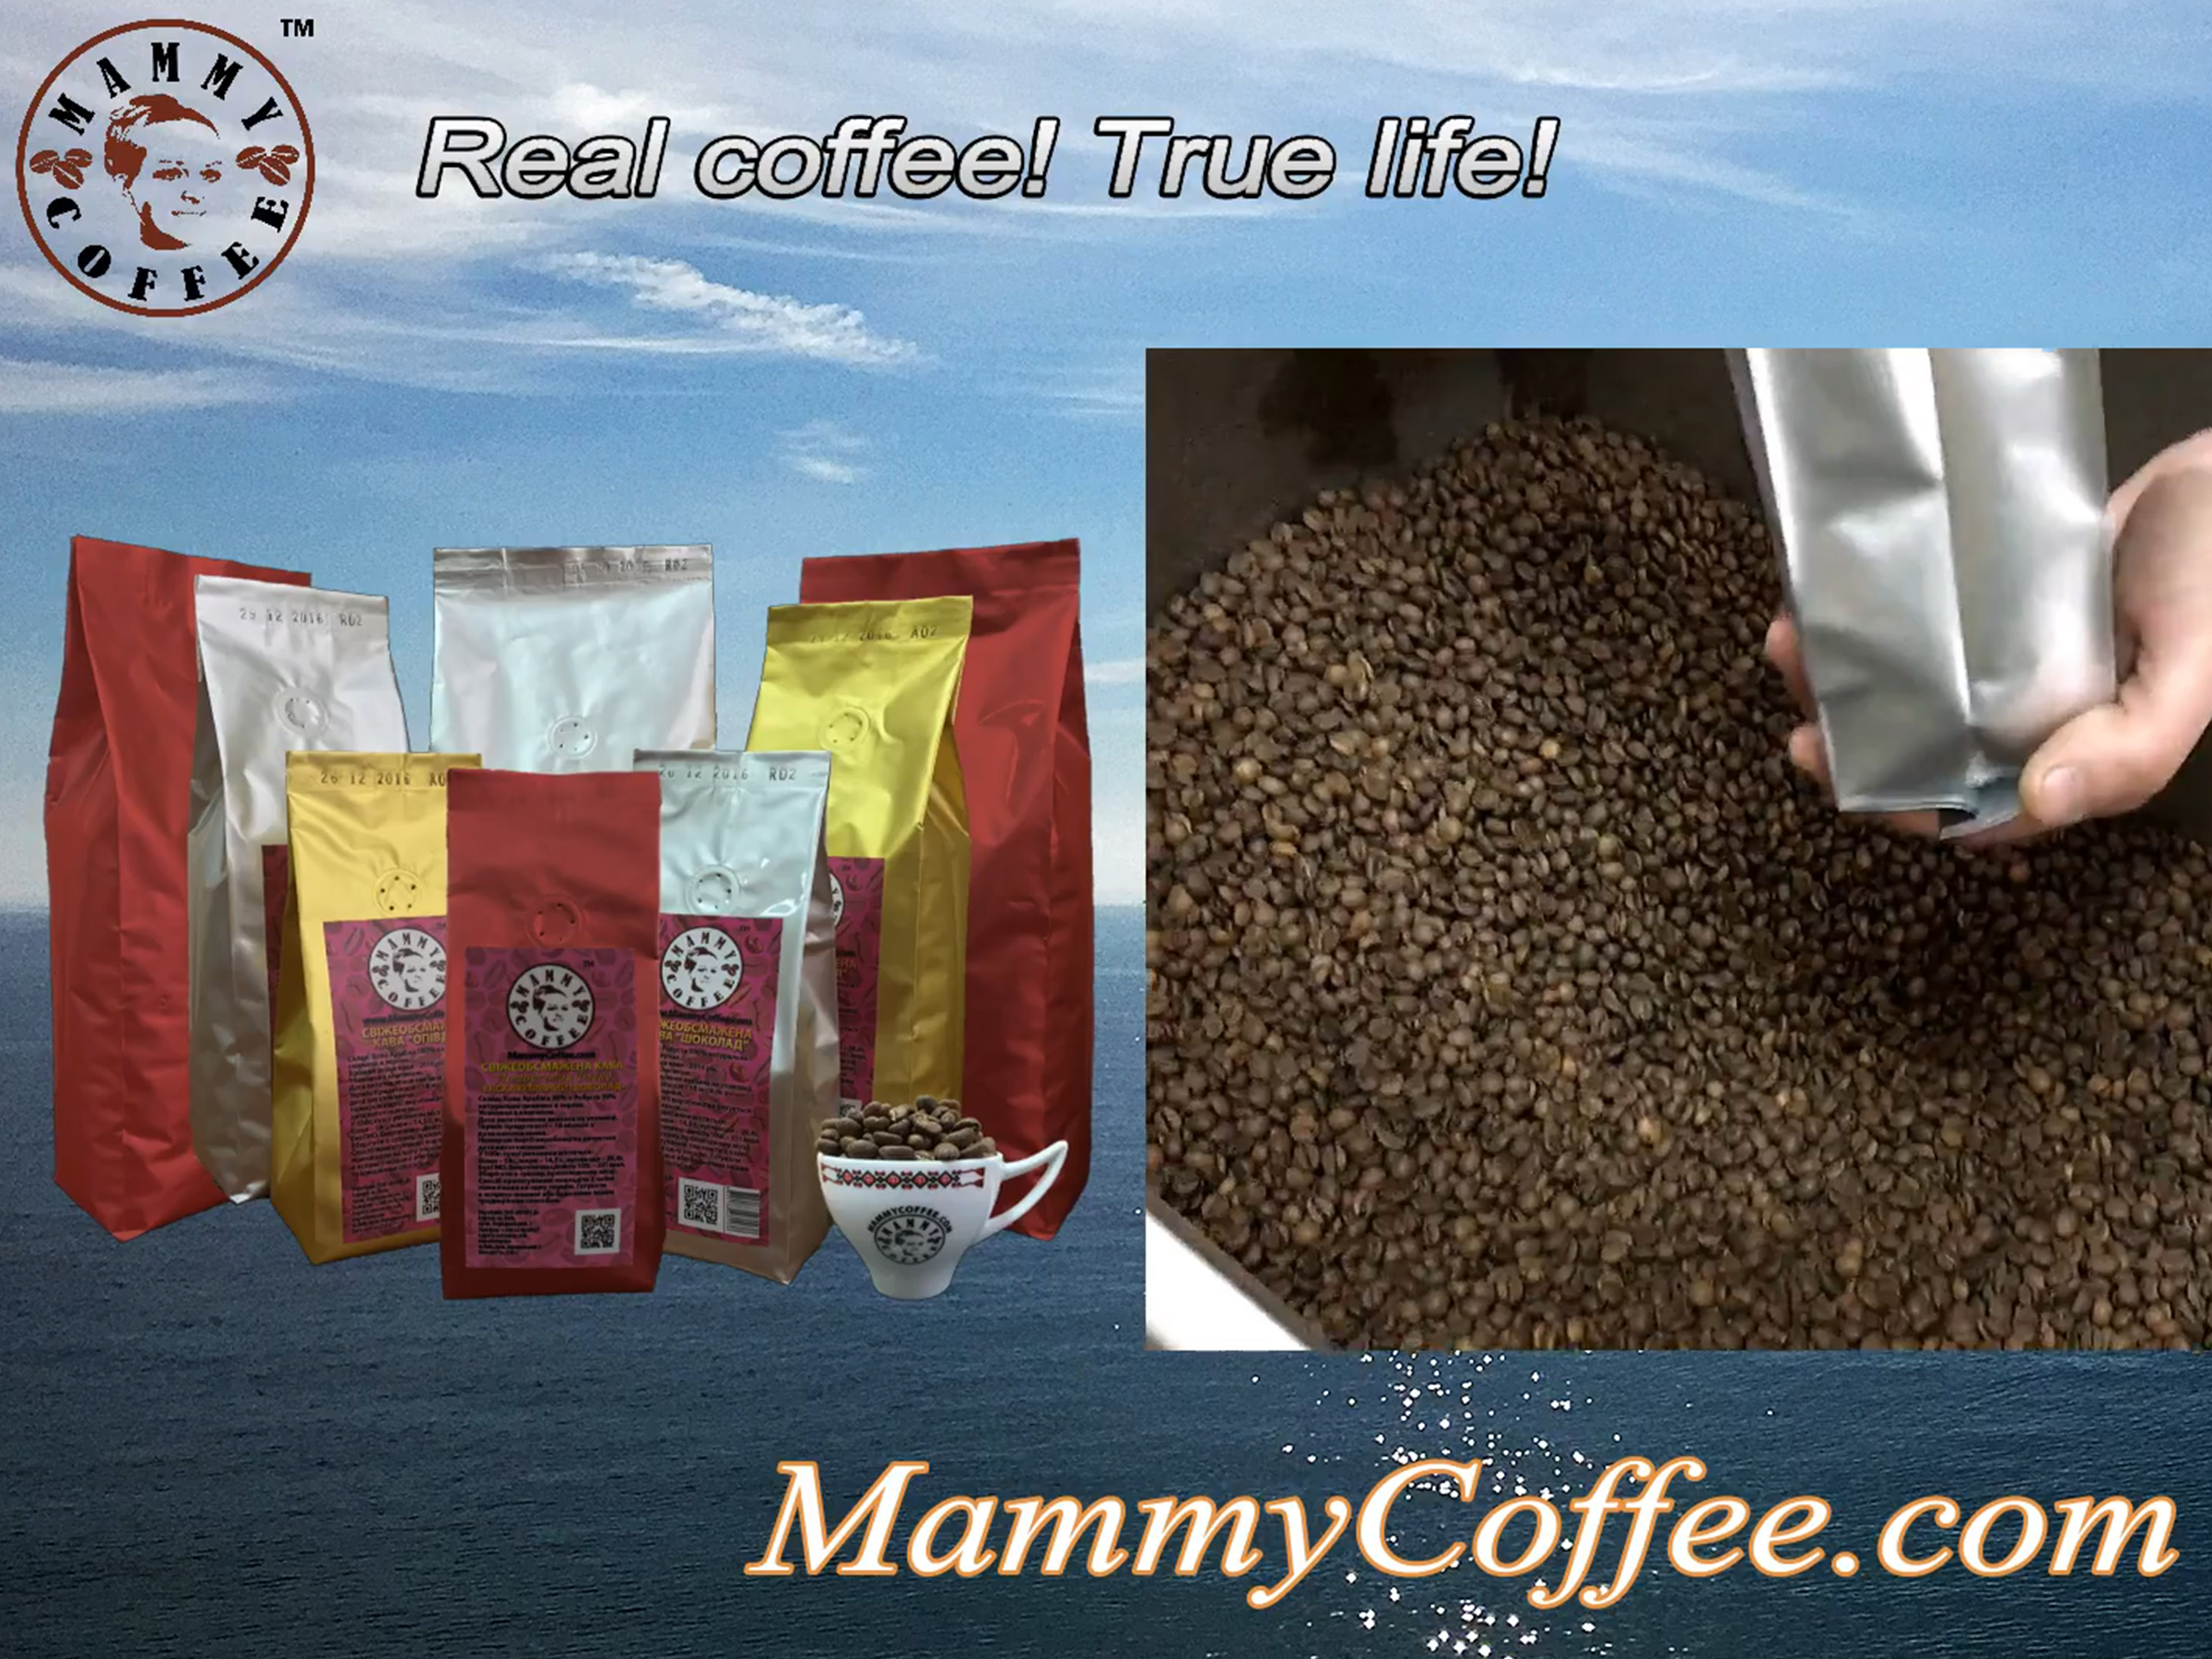 Mammy Coffee™...